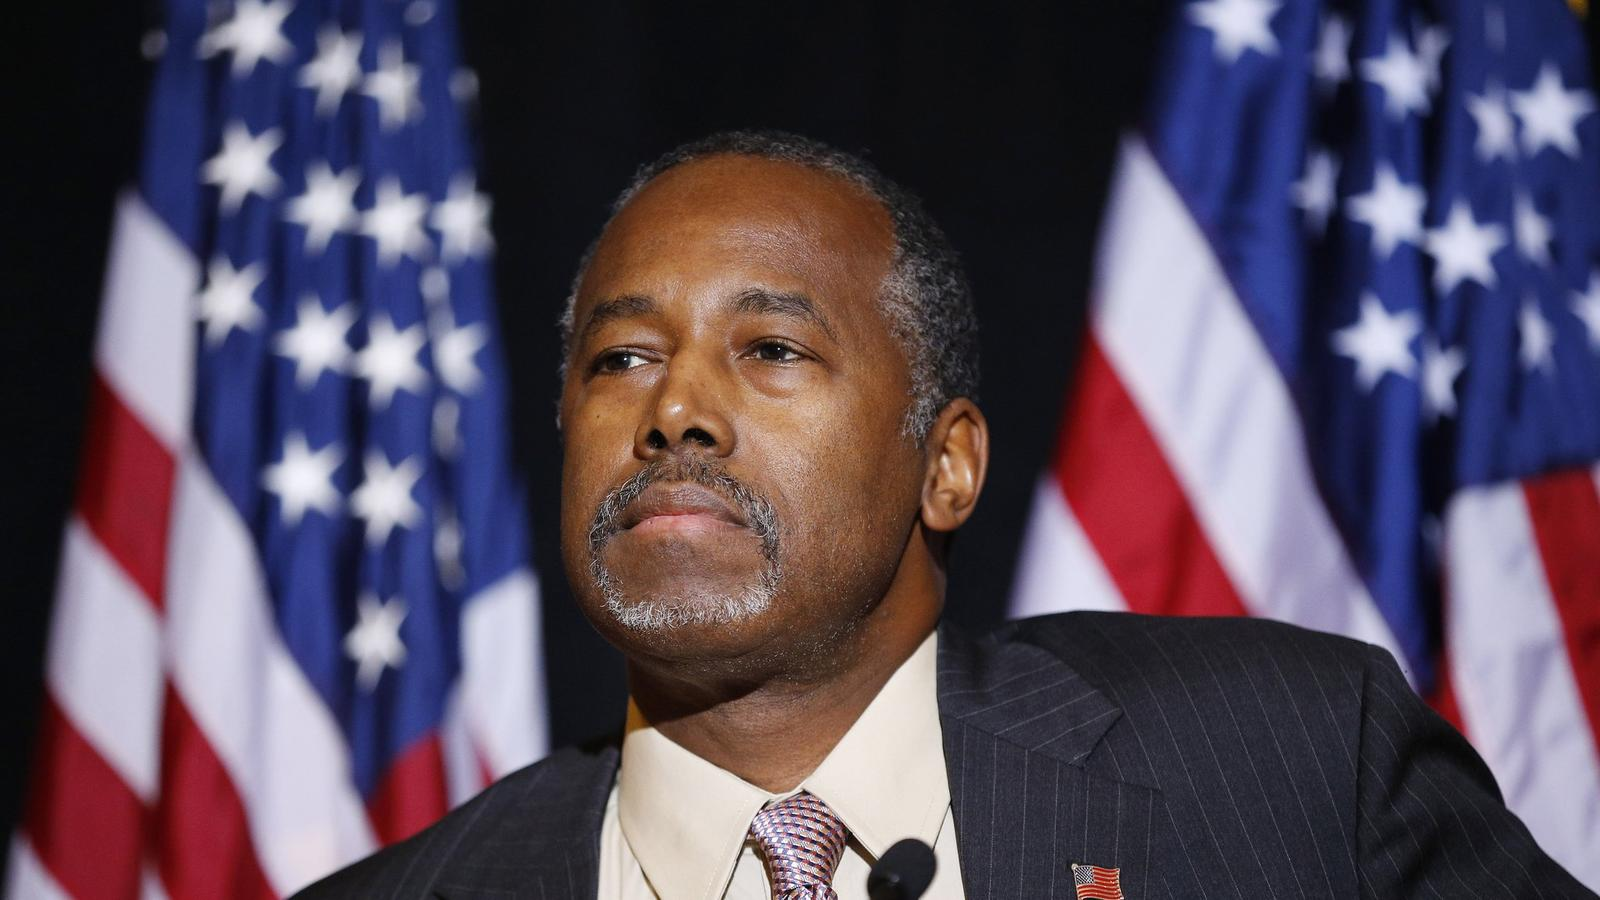 Ben Carson (John Locher / Associated Press)